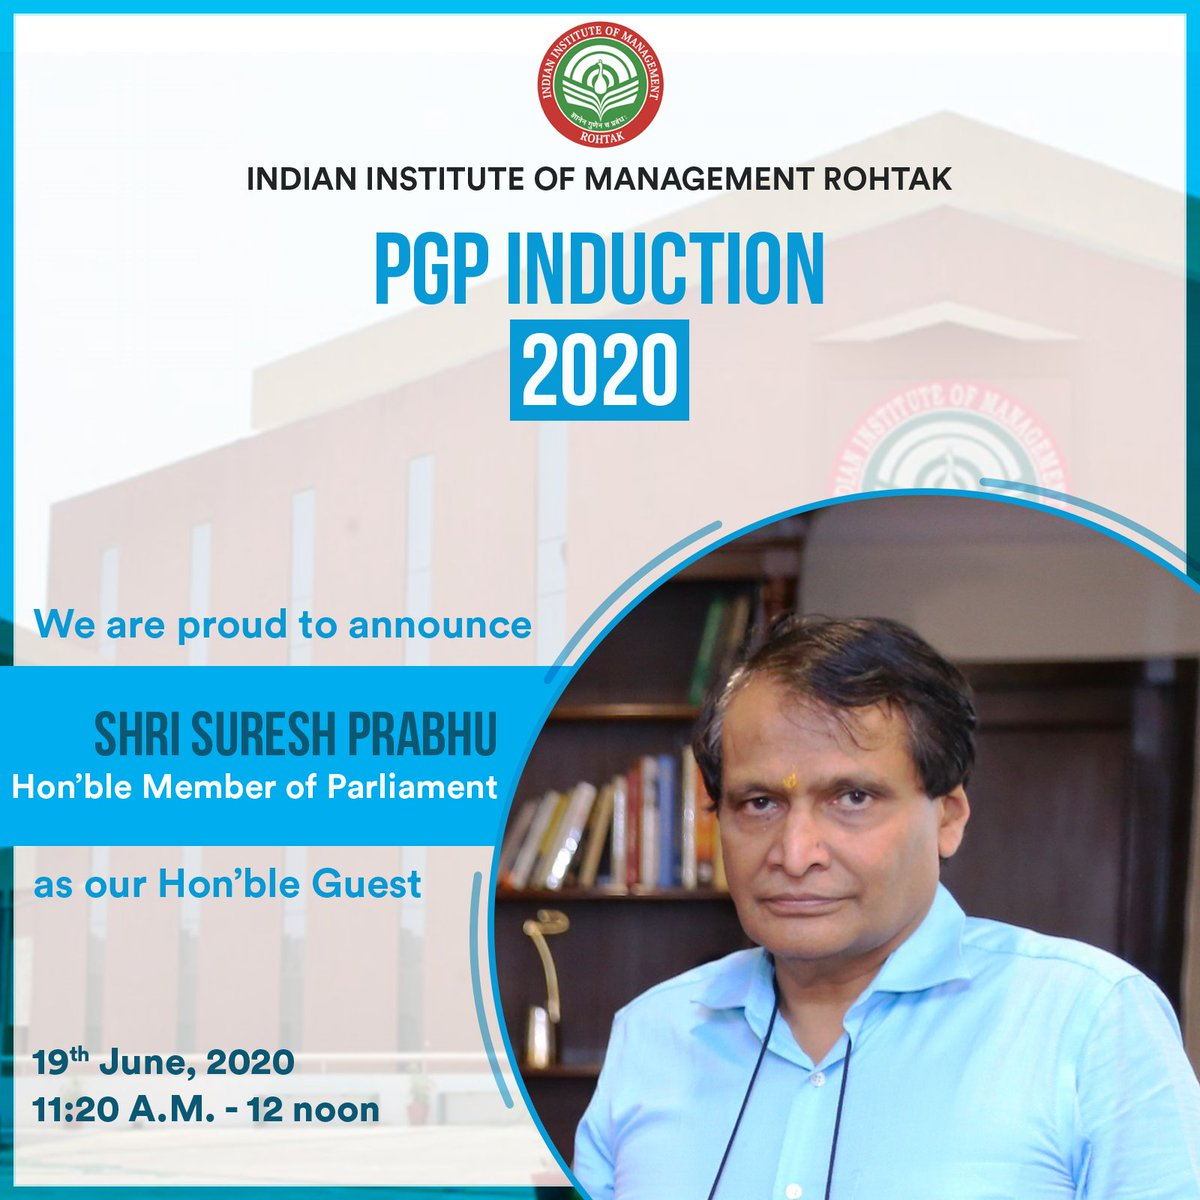 Shri @sureshpprabhu, Hon'ble Member of Parliament, will grace the Induction ceremony of PGP11 batch with his presence as Hon'ble Guest and address the future leaders at IIM Rohtak.  IIM Rohtak thanks him for taking his valuable time to enlighten the new batch.   #IIMRohtak https://t.co/qjSh2rK7r6